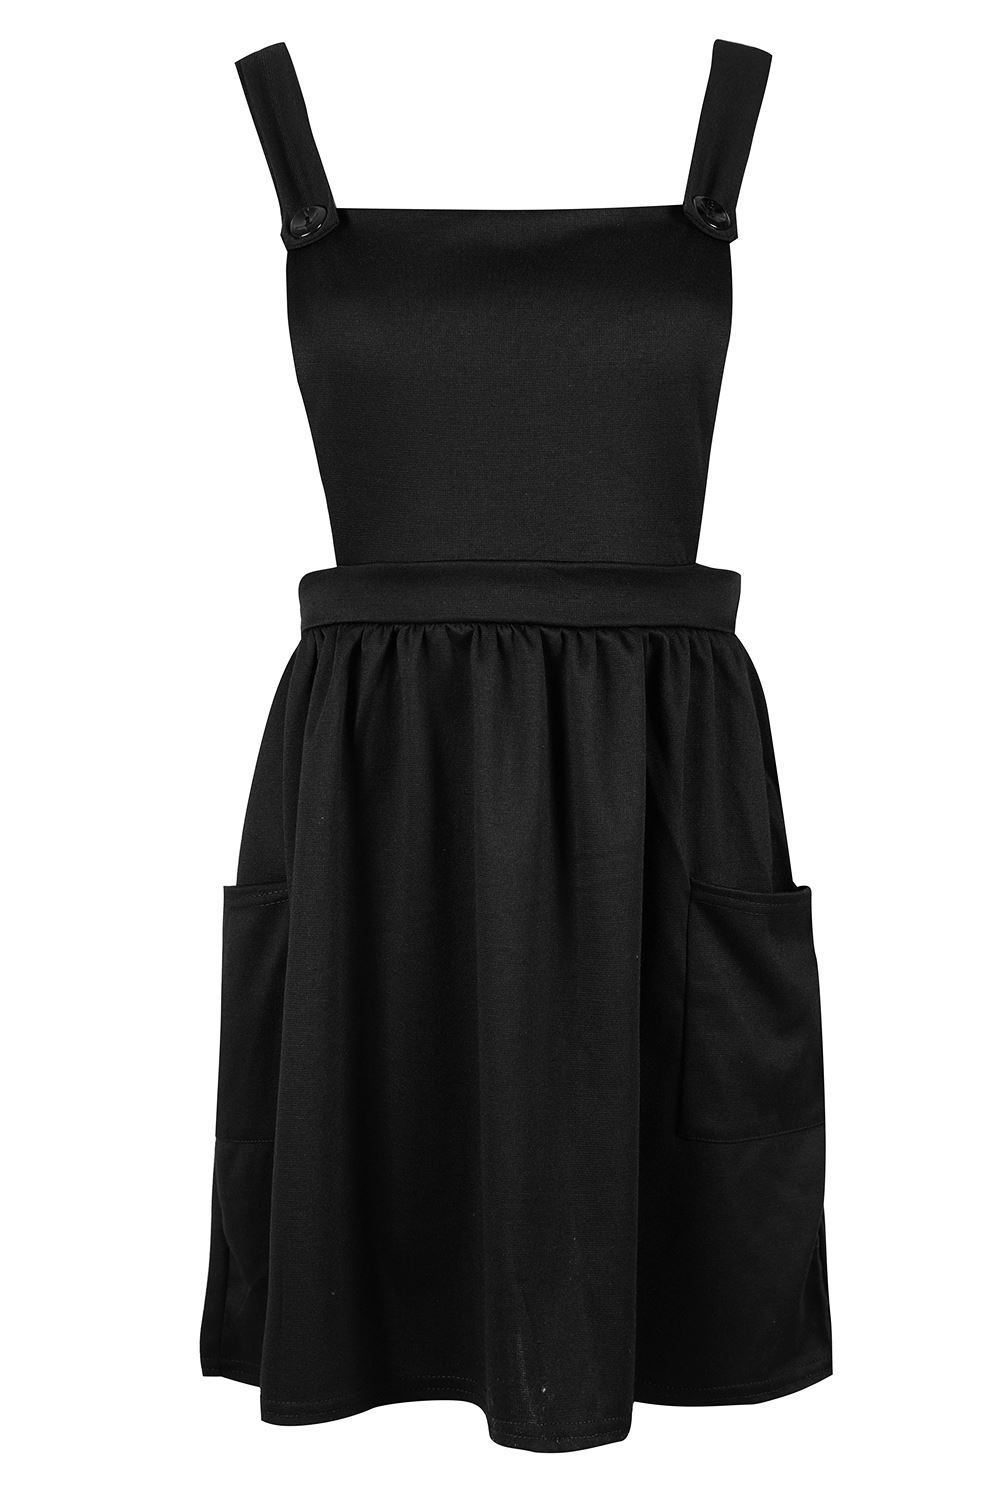 Womens-Ladies-Dungarees-Pinafore-Cross-Back-Strappy-Skater-Flared-Dress-Playsuit thumbnail 2